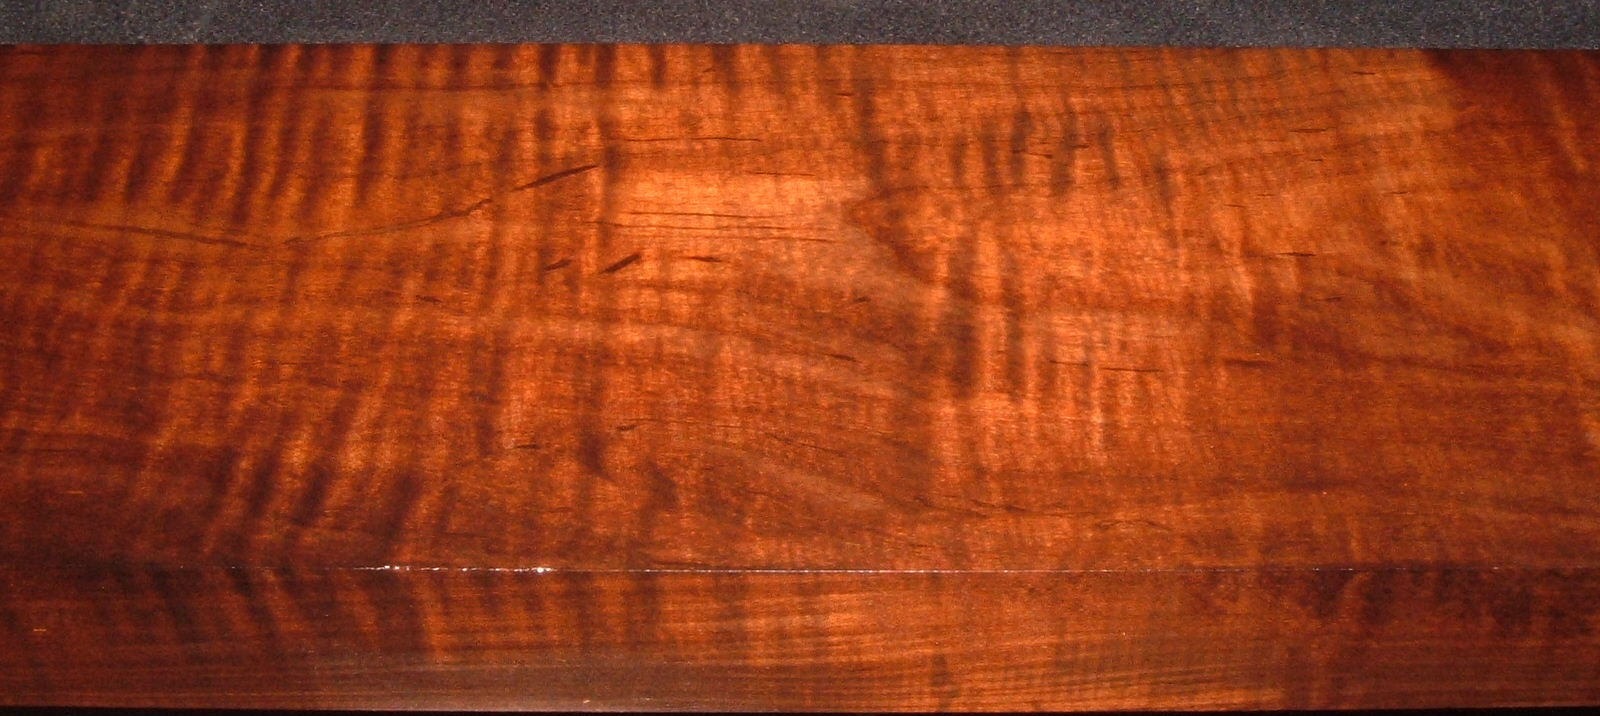 RM2104-121, 1-3/4x6-1/4x37, Roasted Curly Maple